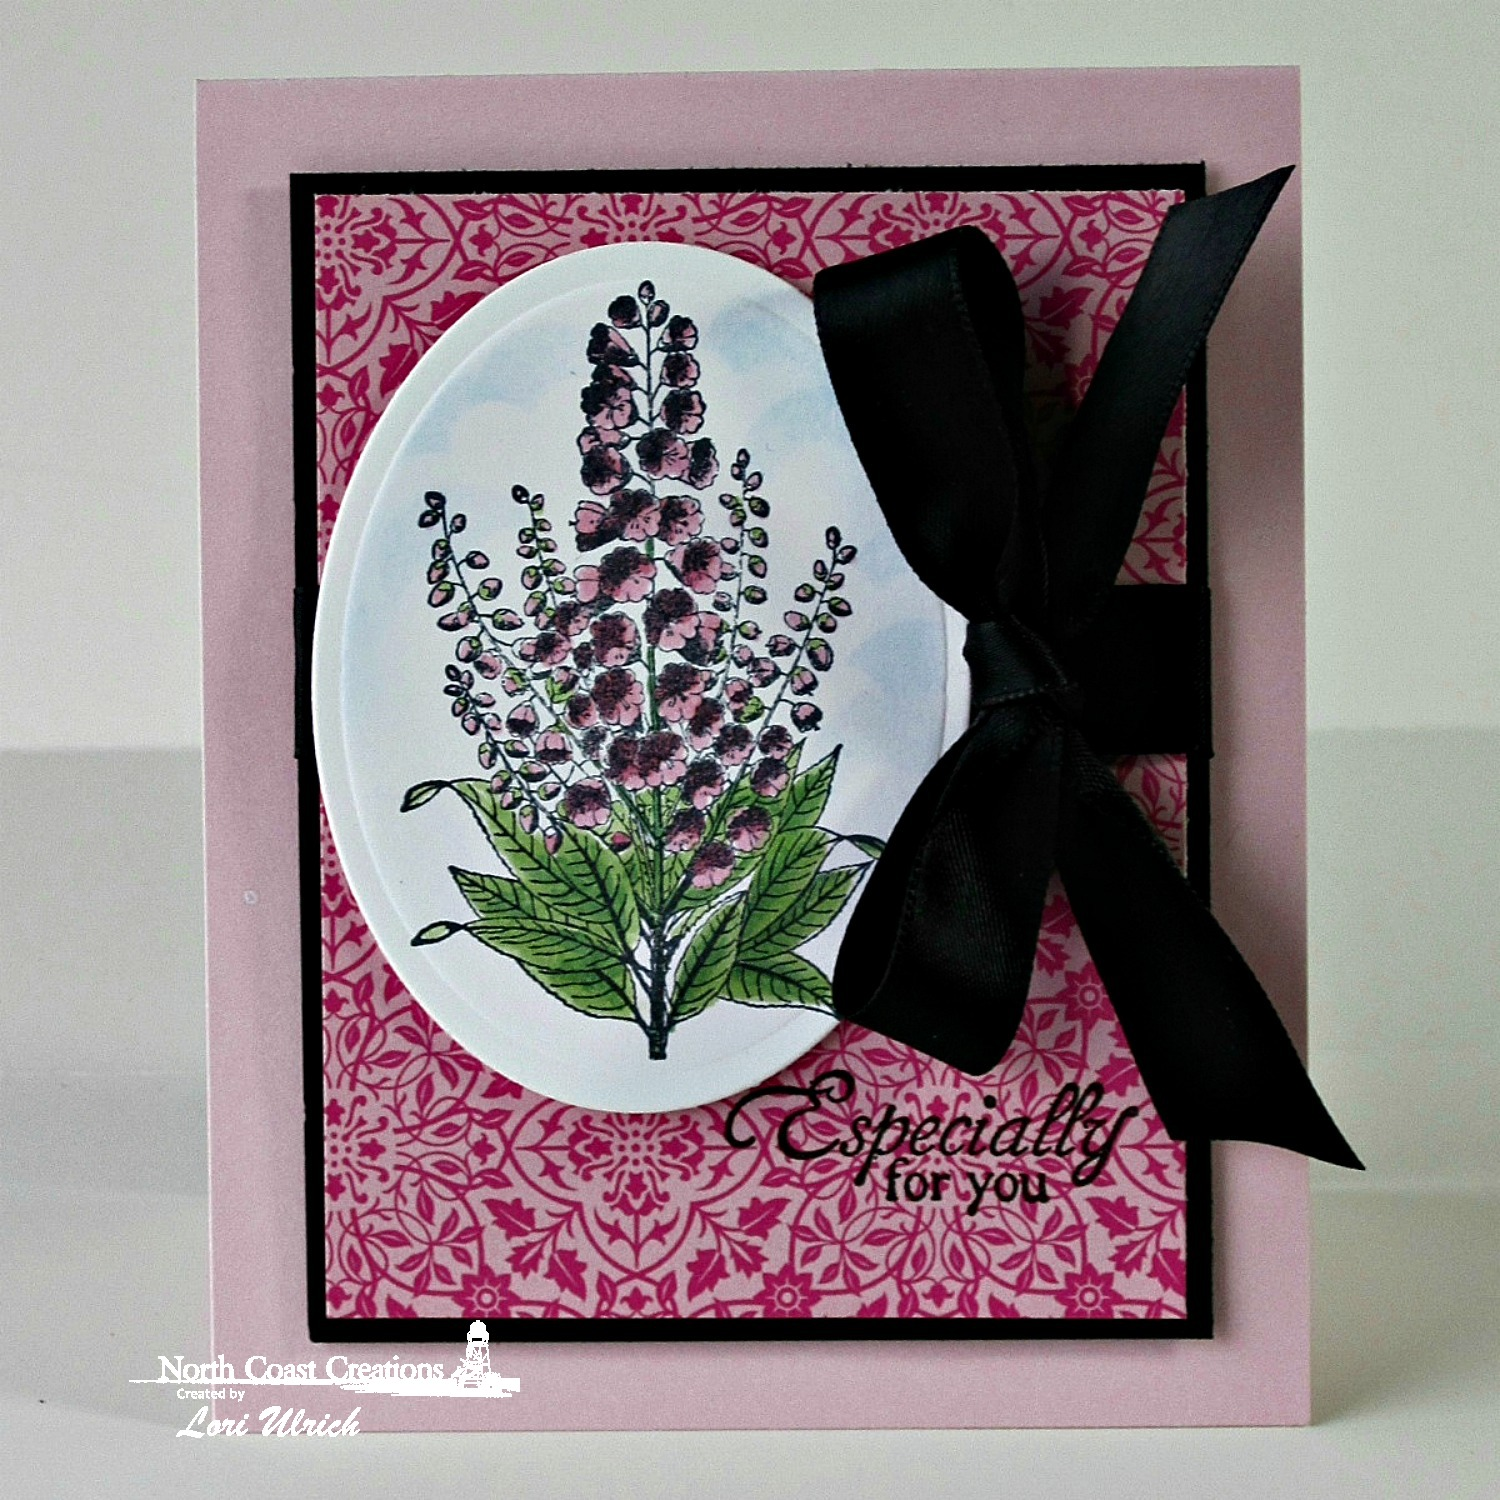 Stamps - North Coast Creations Floral Sentiments 5